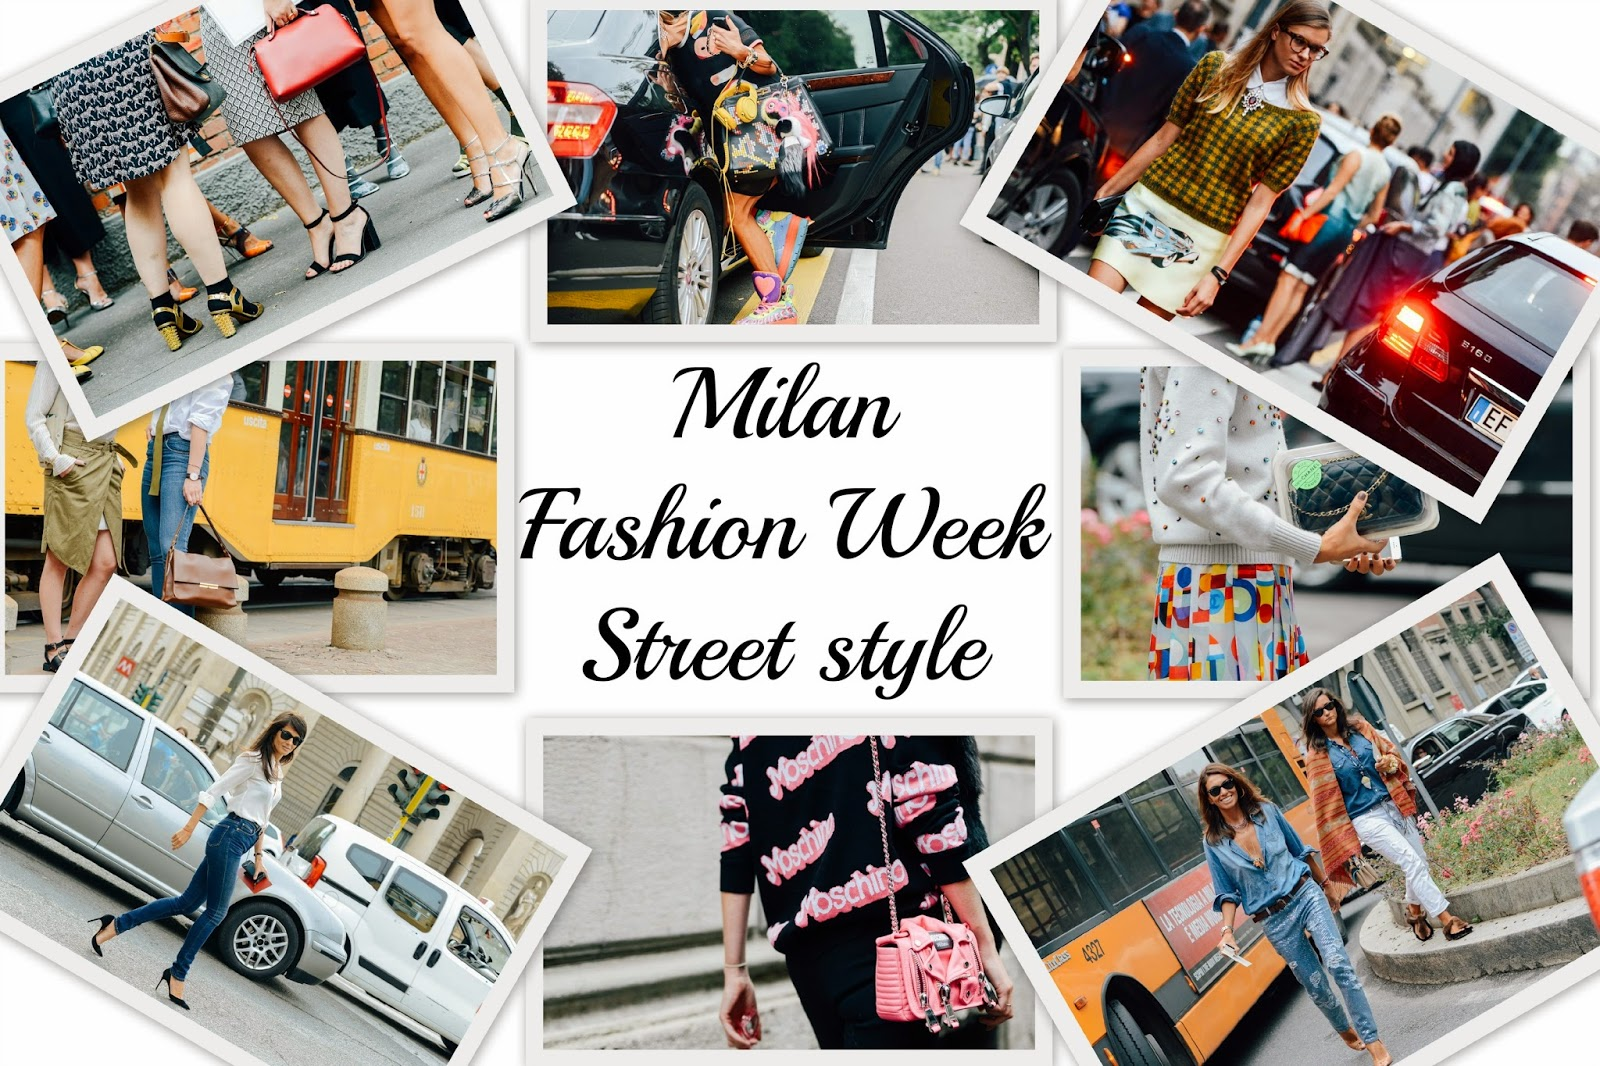 http://www.syriouslyinfashion.com/2014/09/milan-fashion-week-street-style-show-ss.html